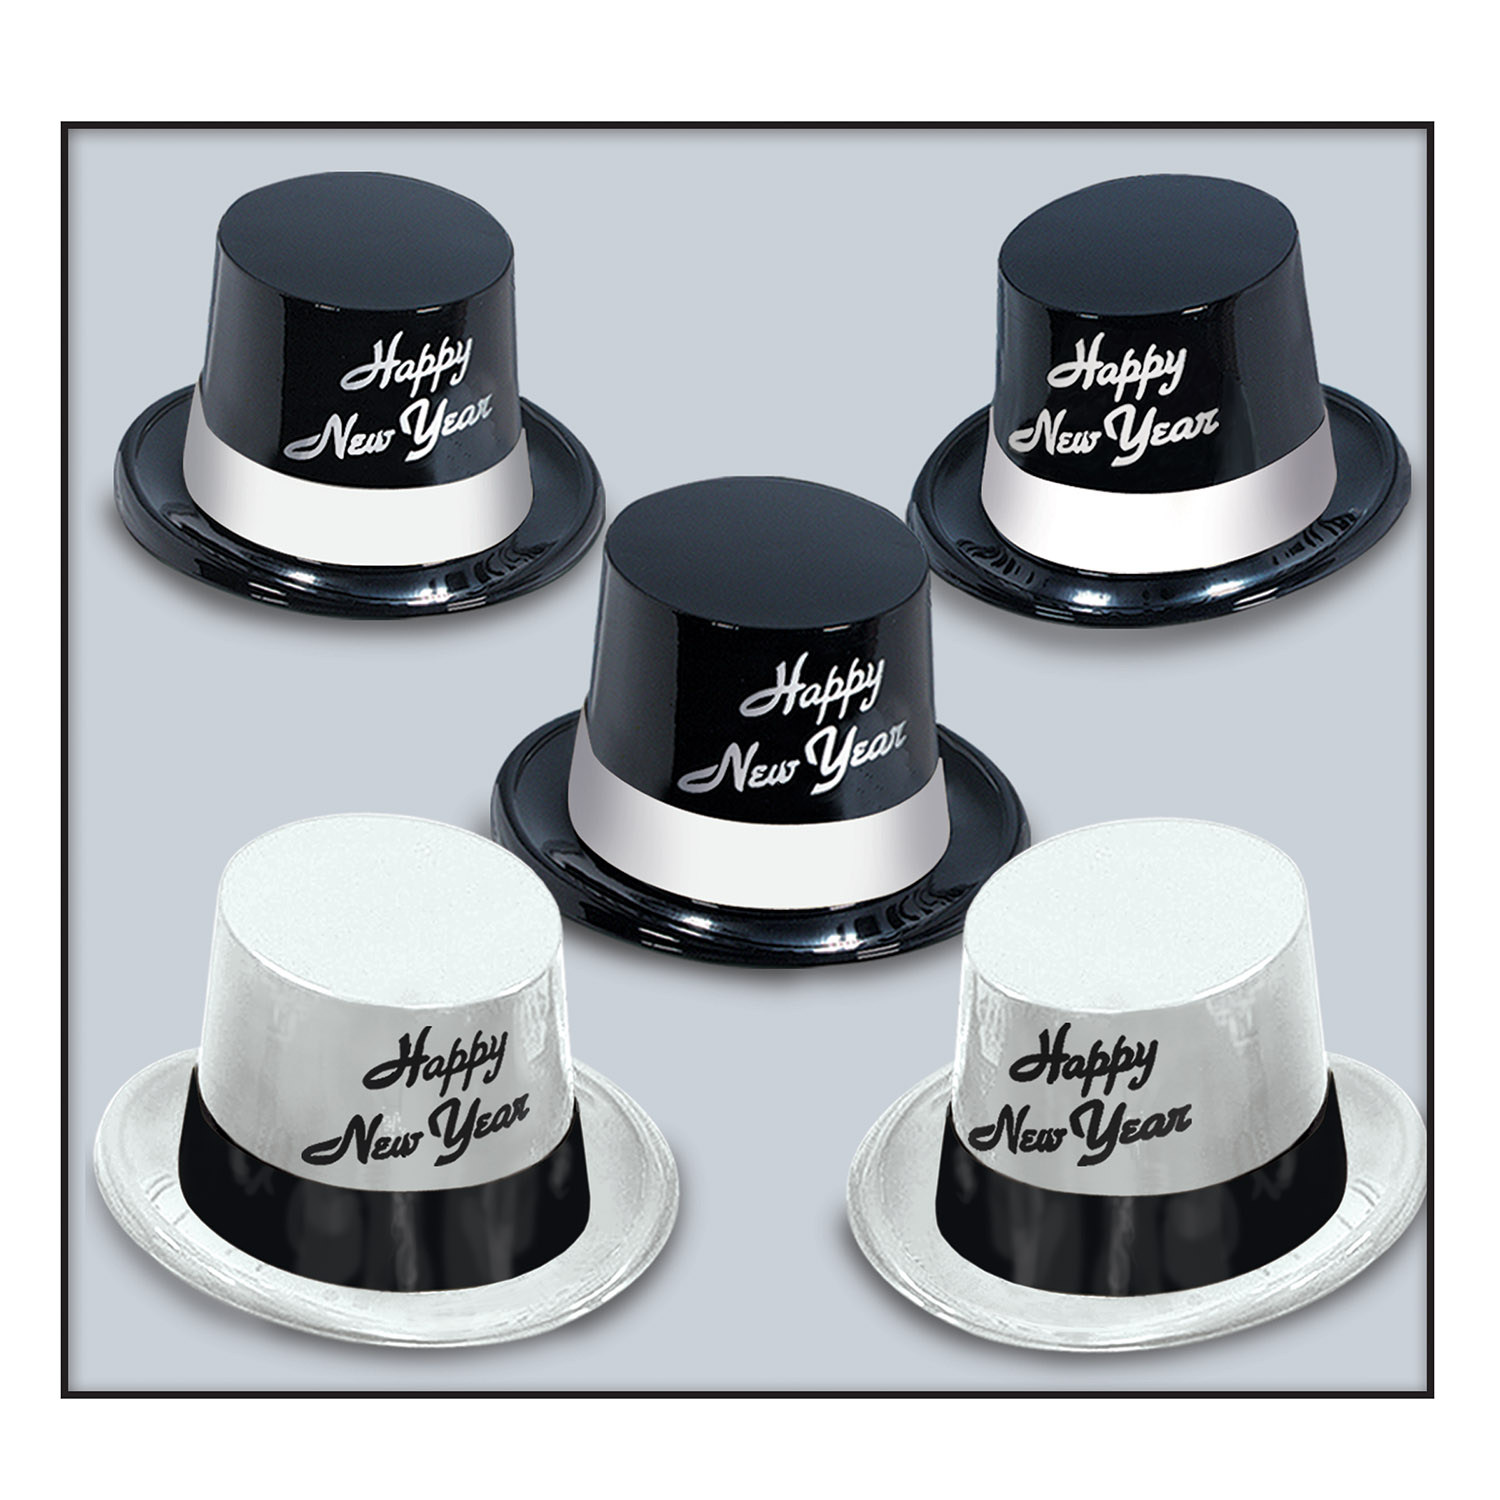 White and black legacy toppers made out of molded plastic. White hats have black bands and lettering while the black hats have white bands and lettering.